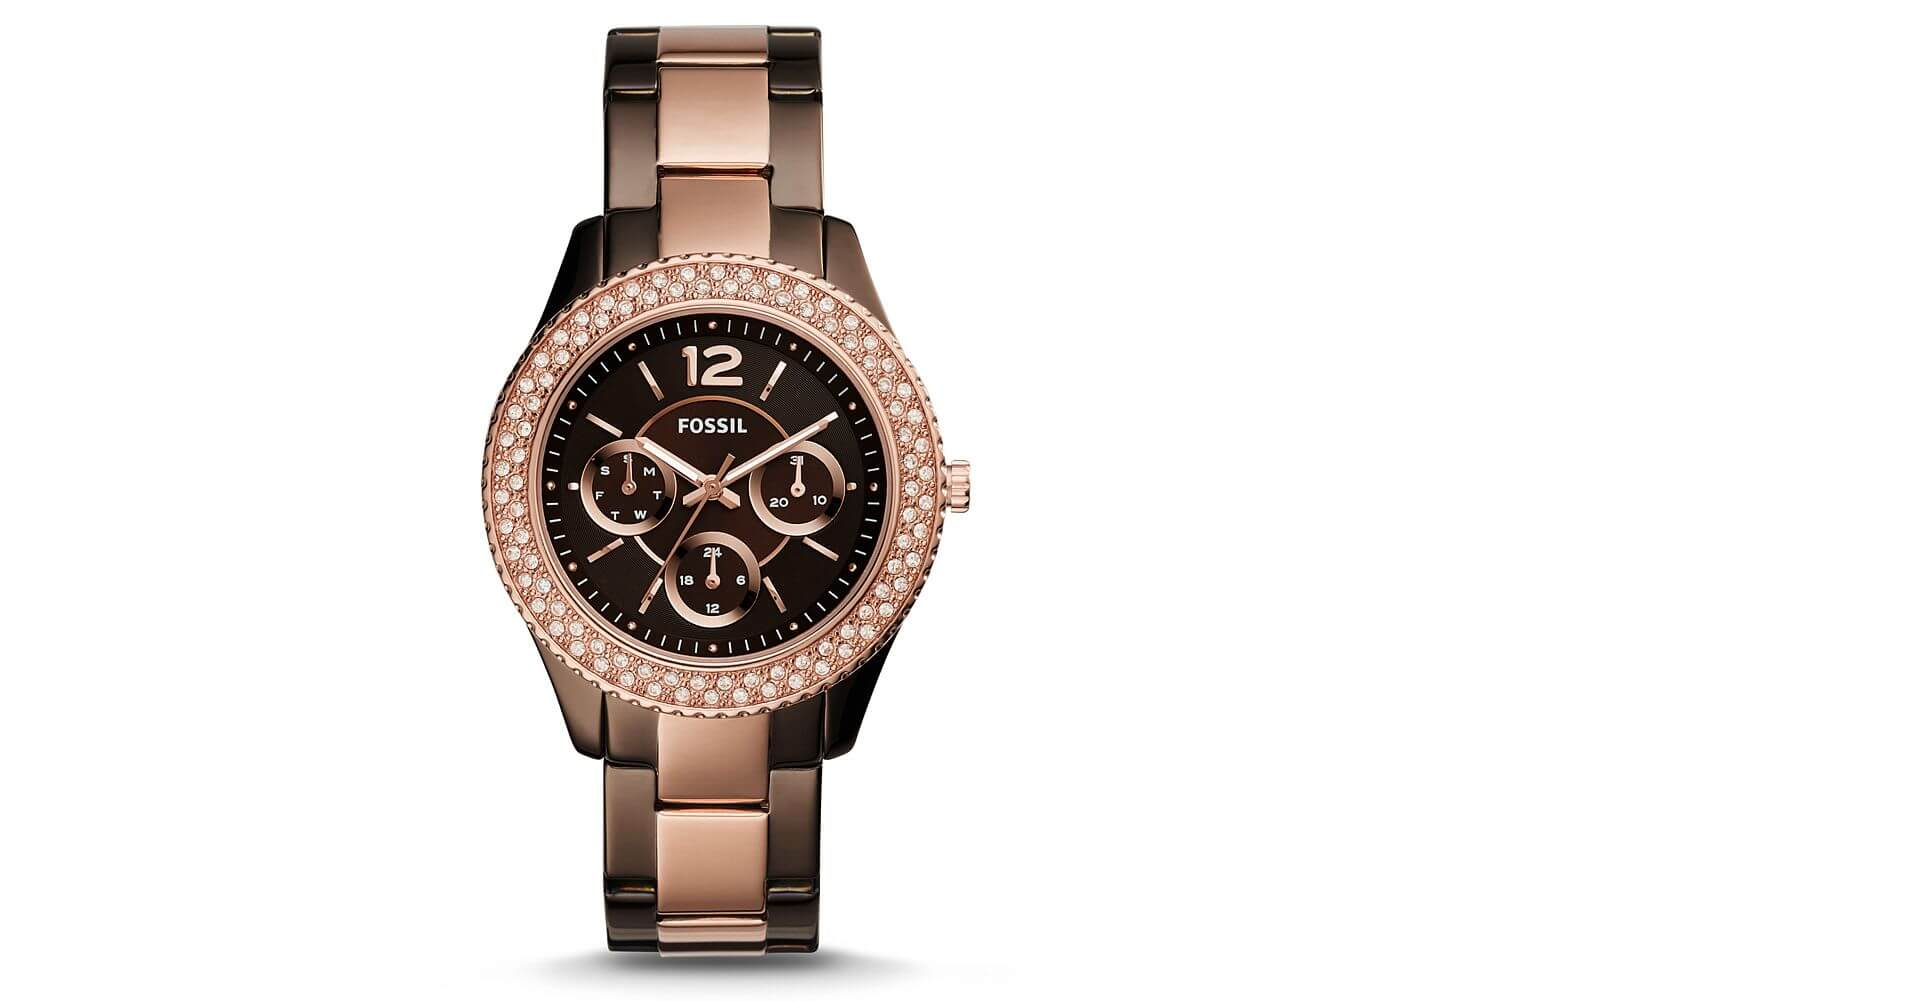 Fossil Stella Watch - Women's Watches in Rose Gold | Buckle